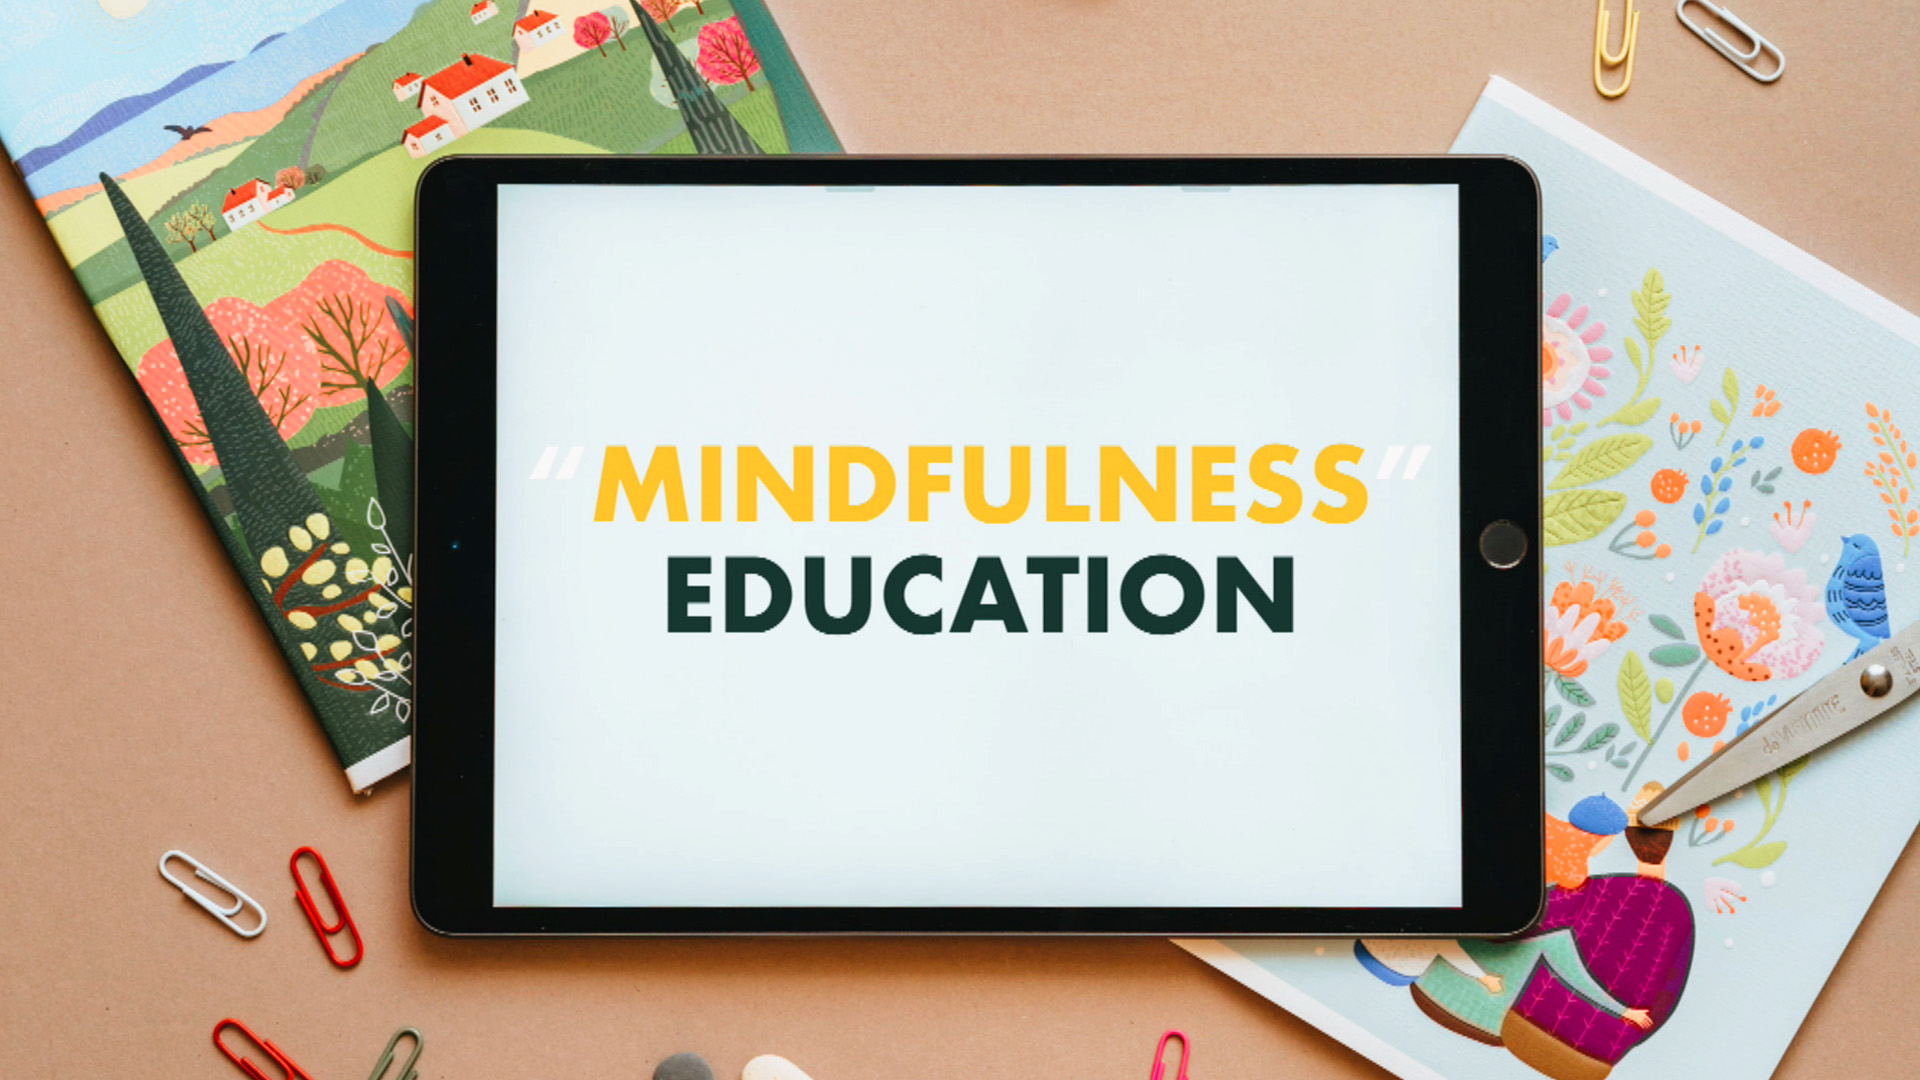 Ep.140 [ Mindfulness Education for Students / Let's reduce waste using resource circulation! / Walk-thru Toy Rental Service ]